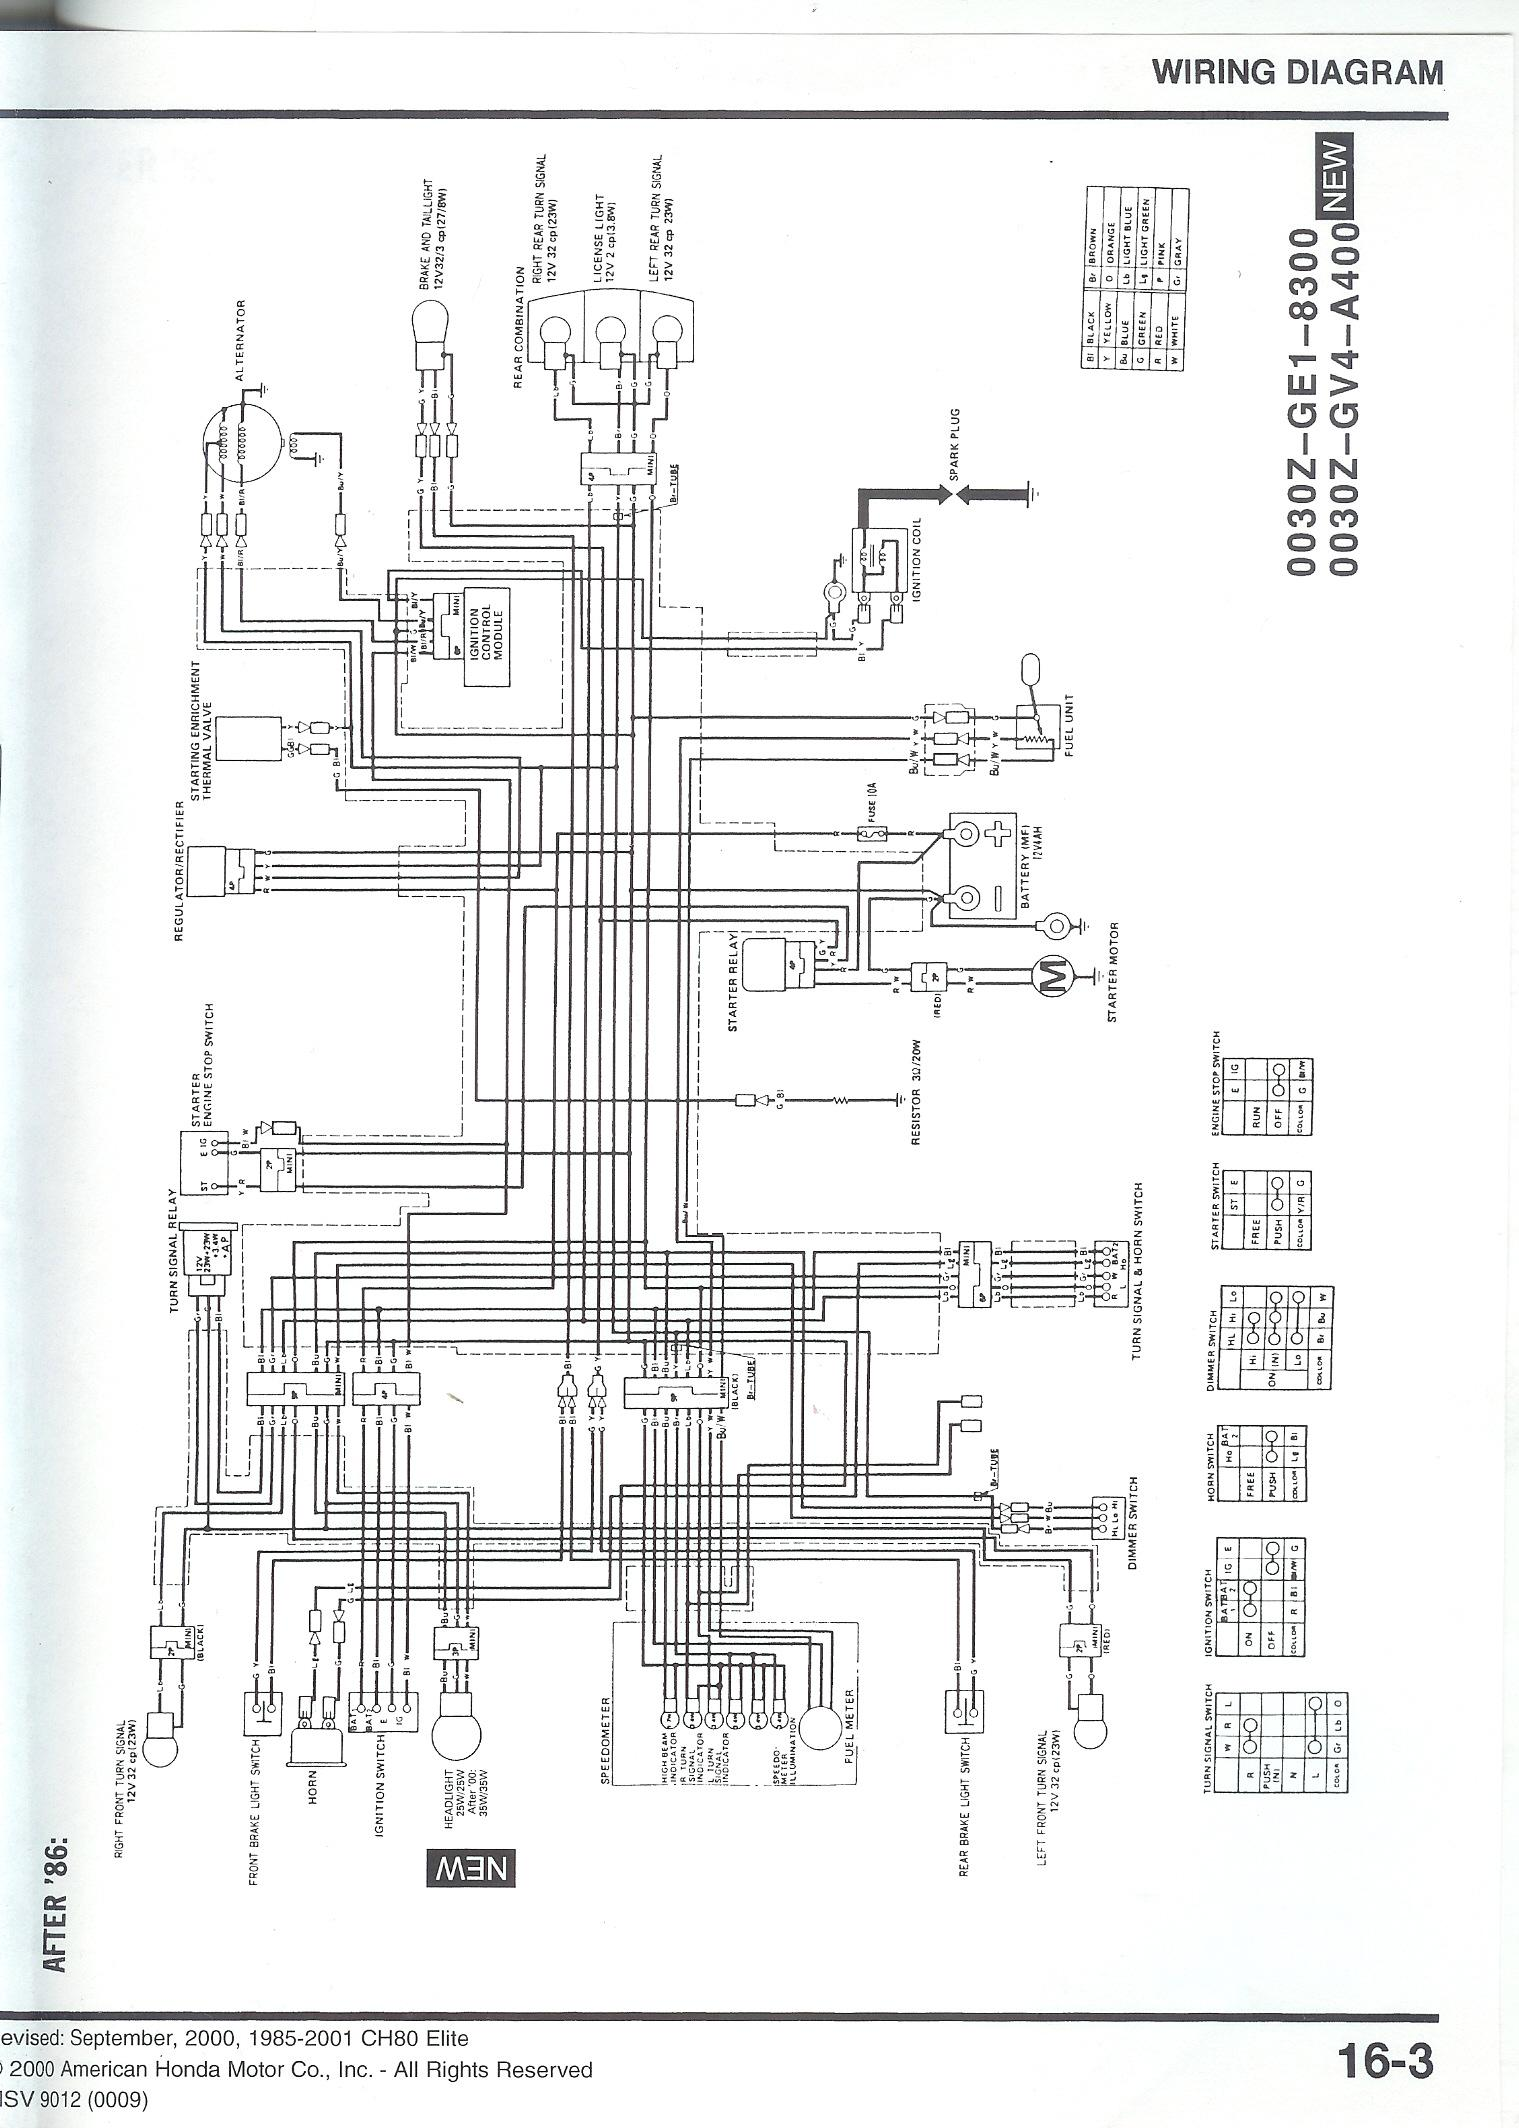 wiring diagram  page 1 of 1